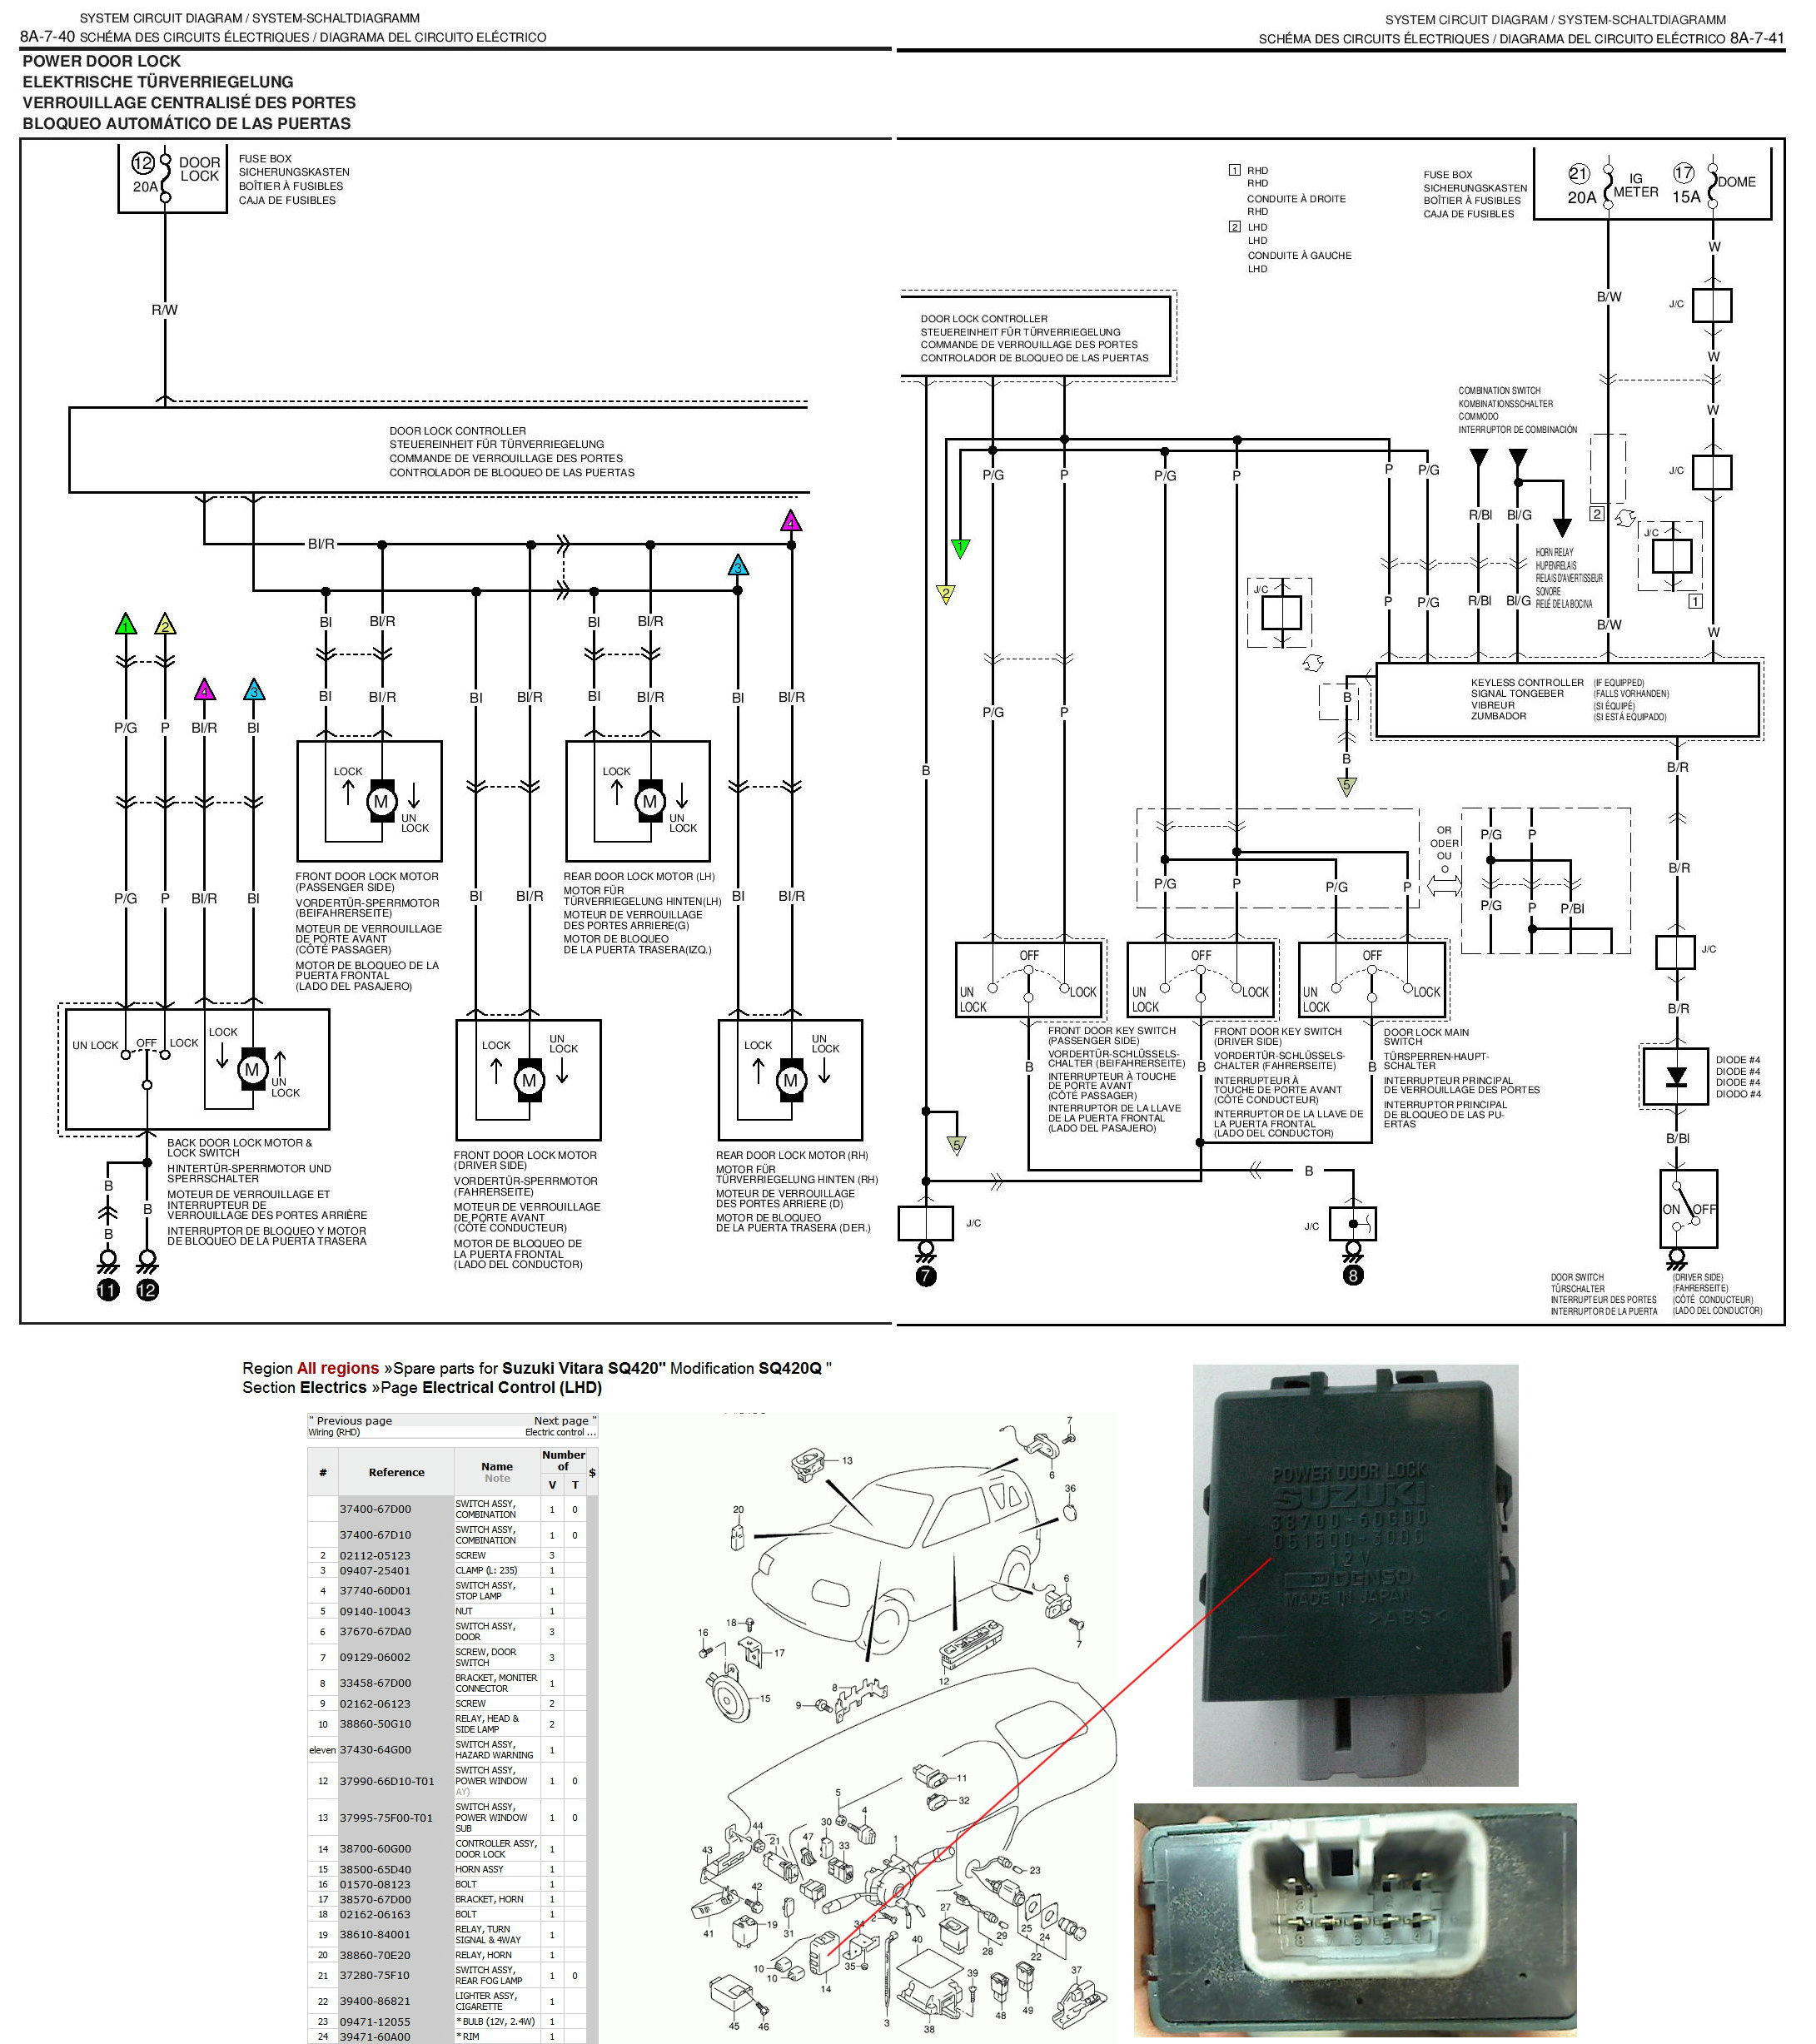 6n1q5nrt1taddmazg vauxhall zafira wiring diagram efcaviation com astra h wiring diagram download at soozxer.org